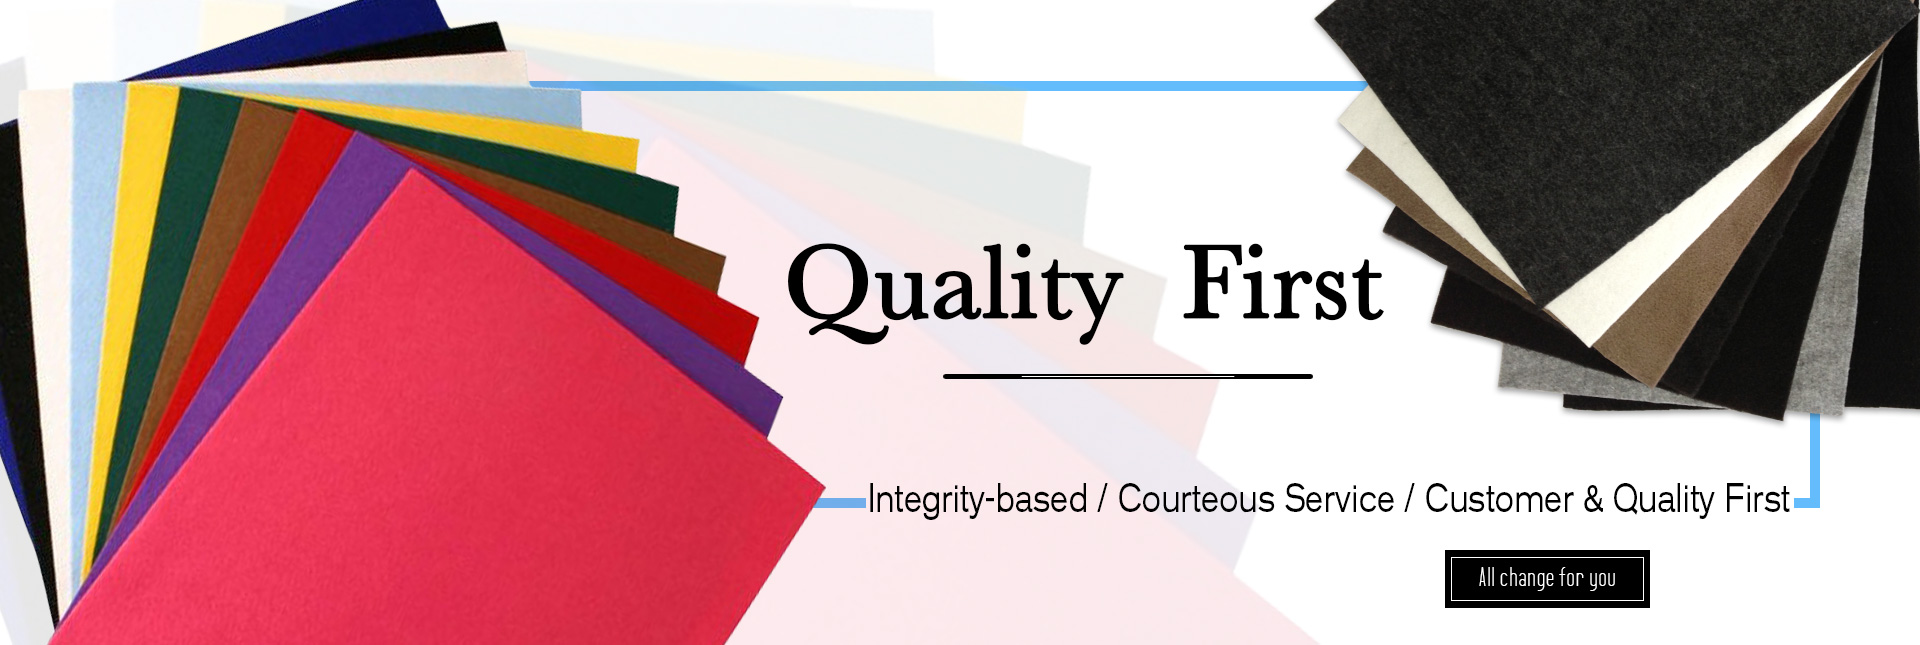 quality-first